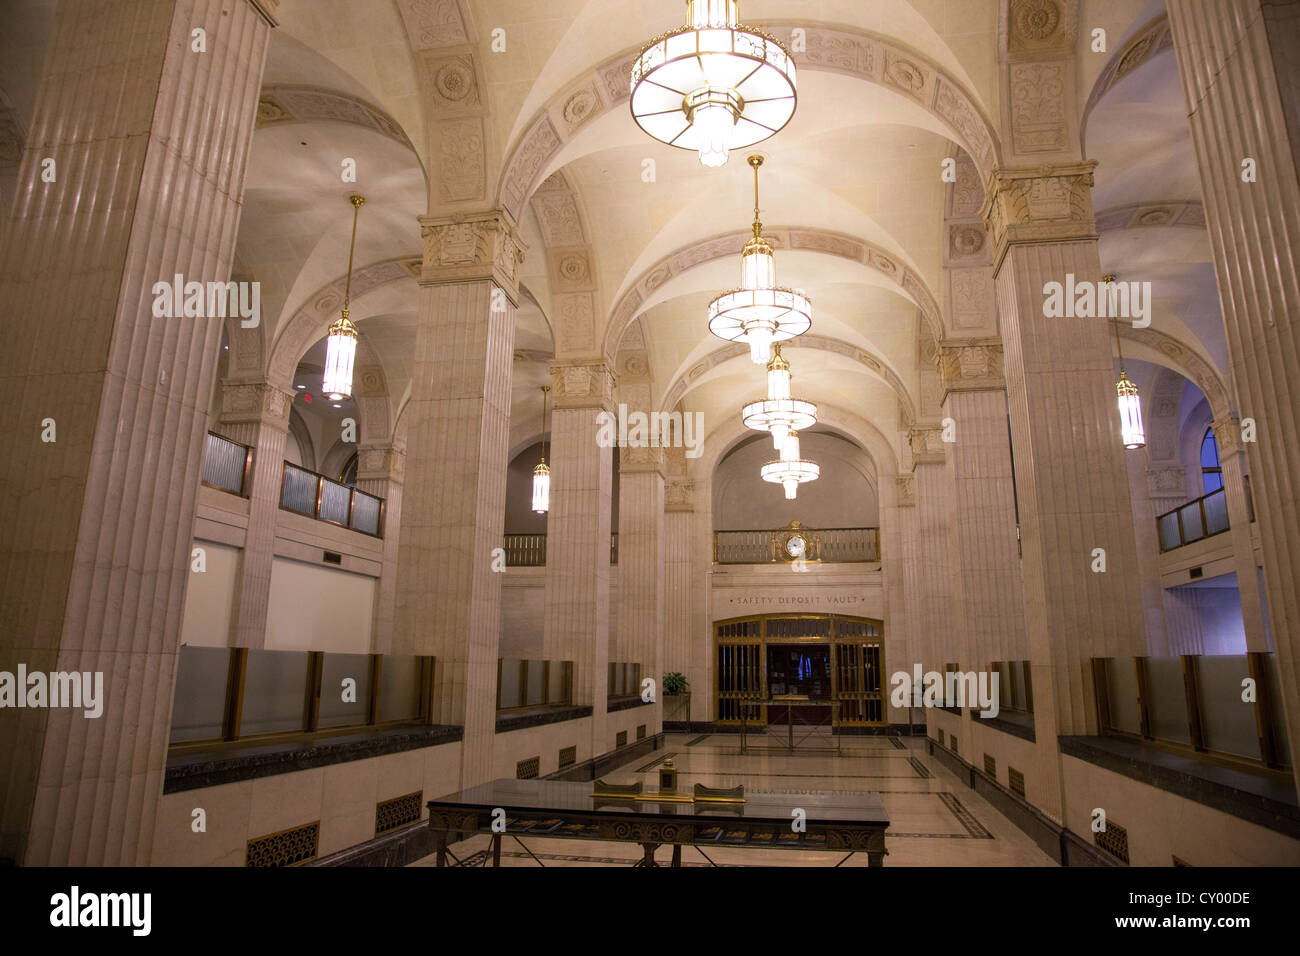 Art Deco Bank.Vintage Art Deco Bank Interior Stock Photo 51016826 Alamy